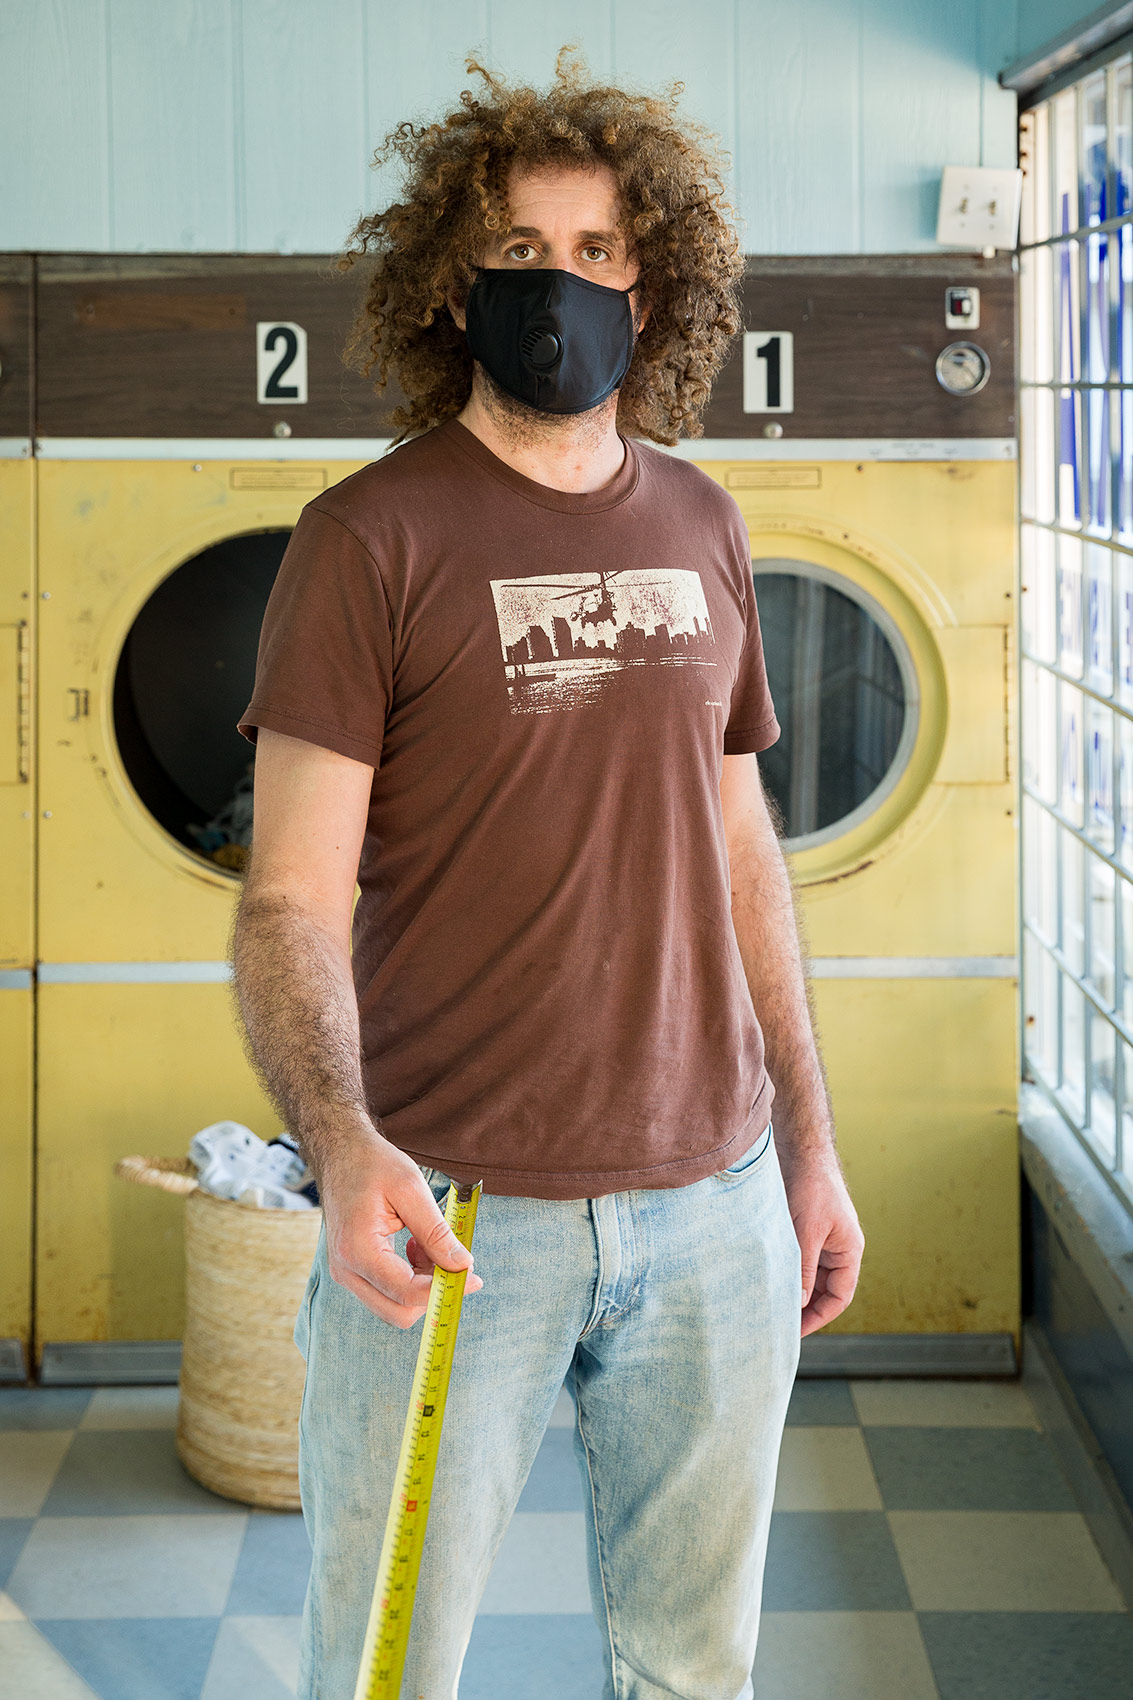 A man wearing a black mask stands inside a laundromat and holds a long tape measure that is a symbol of Covid-19 social distance